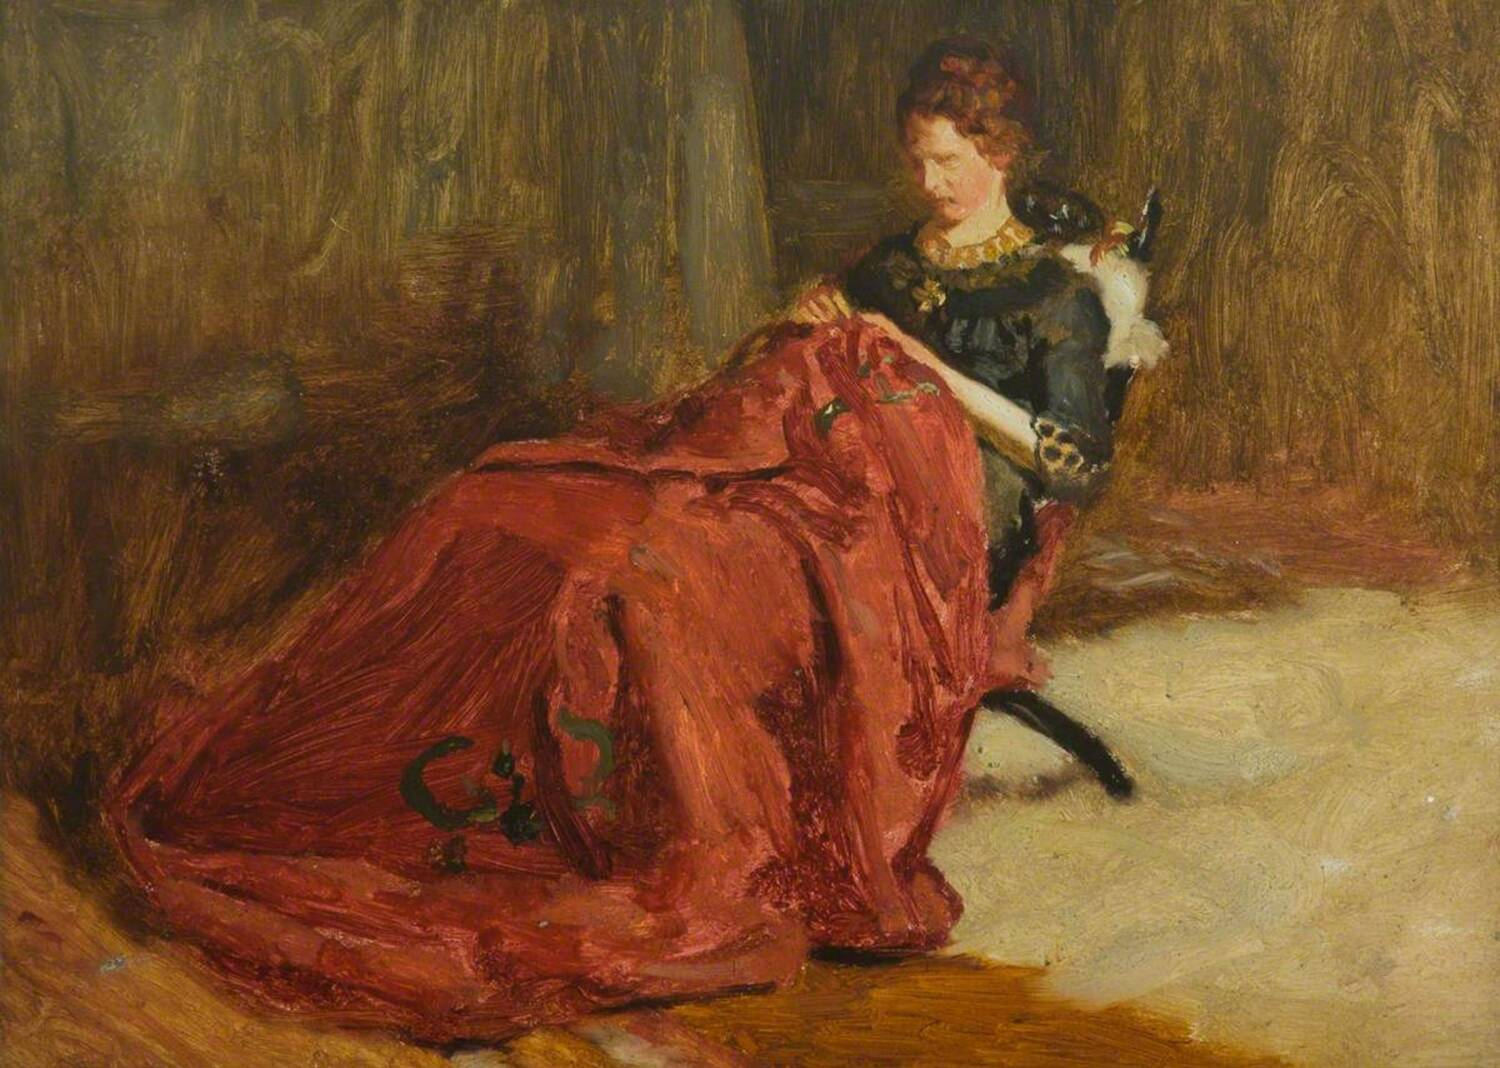 An oil painting of a woman sitting on a wooden chair in an interior. She wears a green dress, and is embroidering a large red cloth which covers her legs.